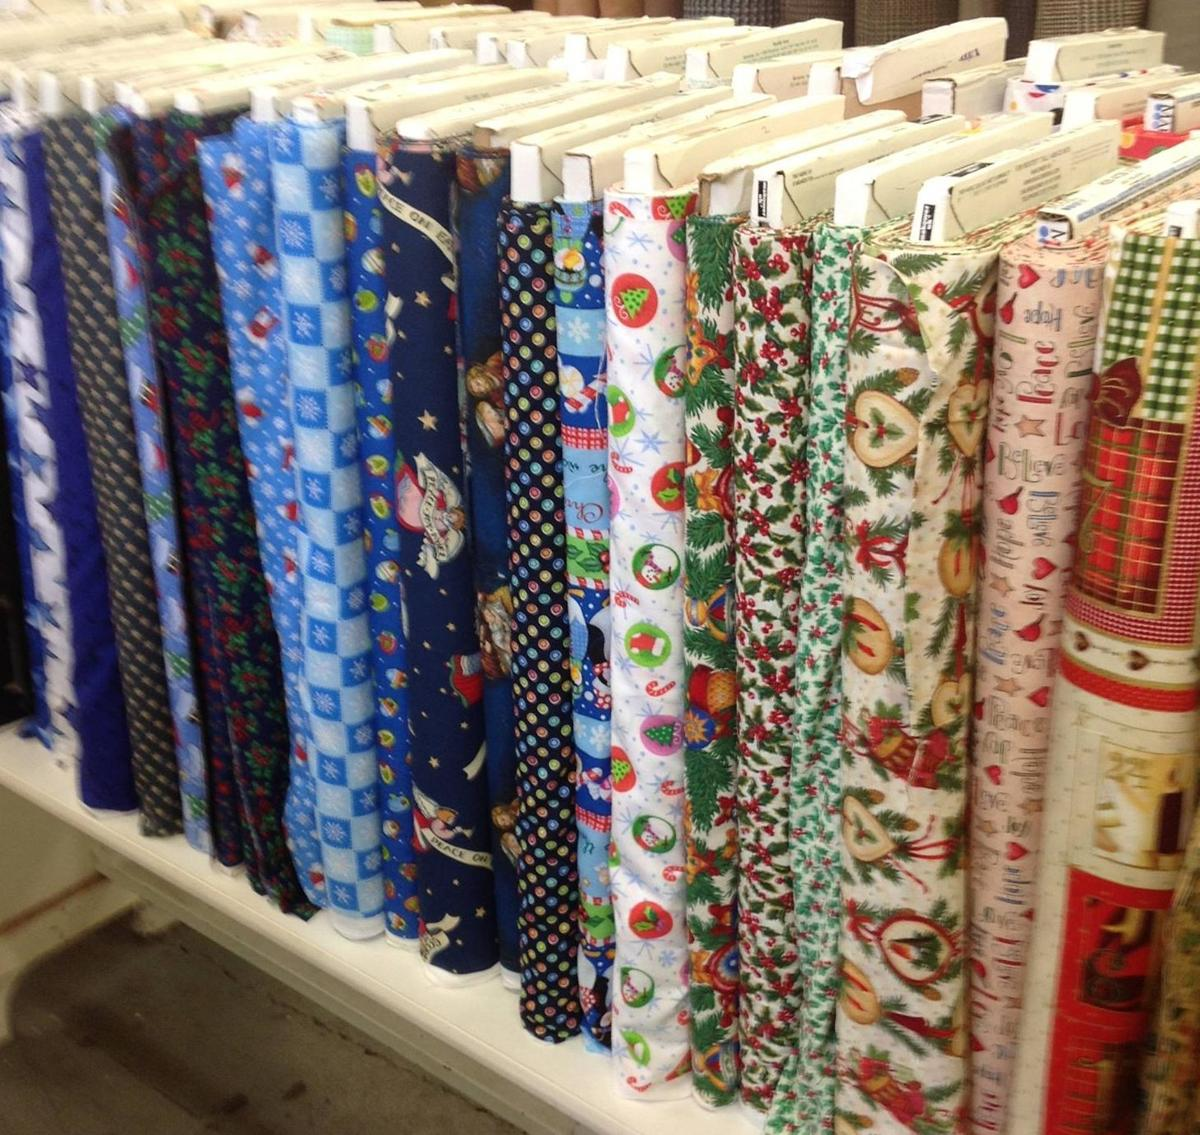 PA Fabric Outlet Store In Leola To Close By May 1